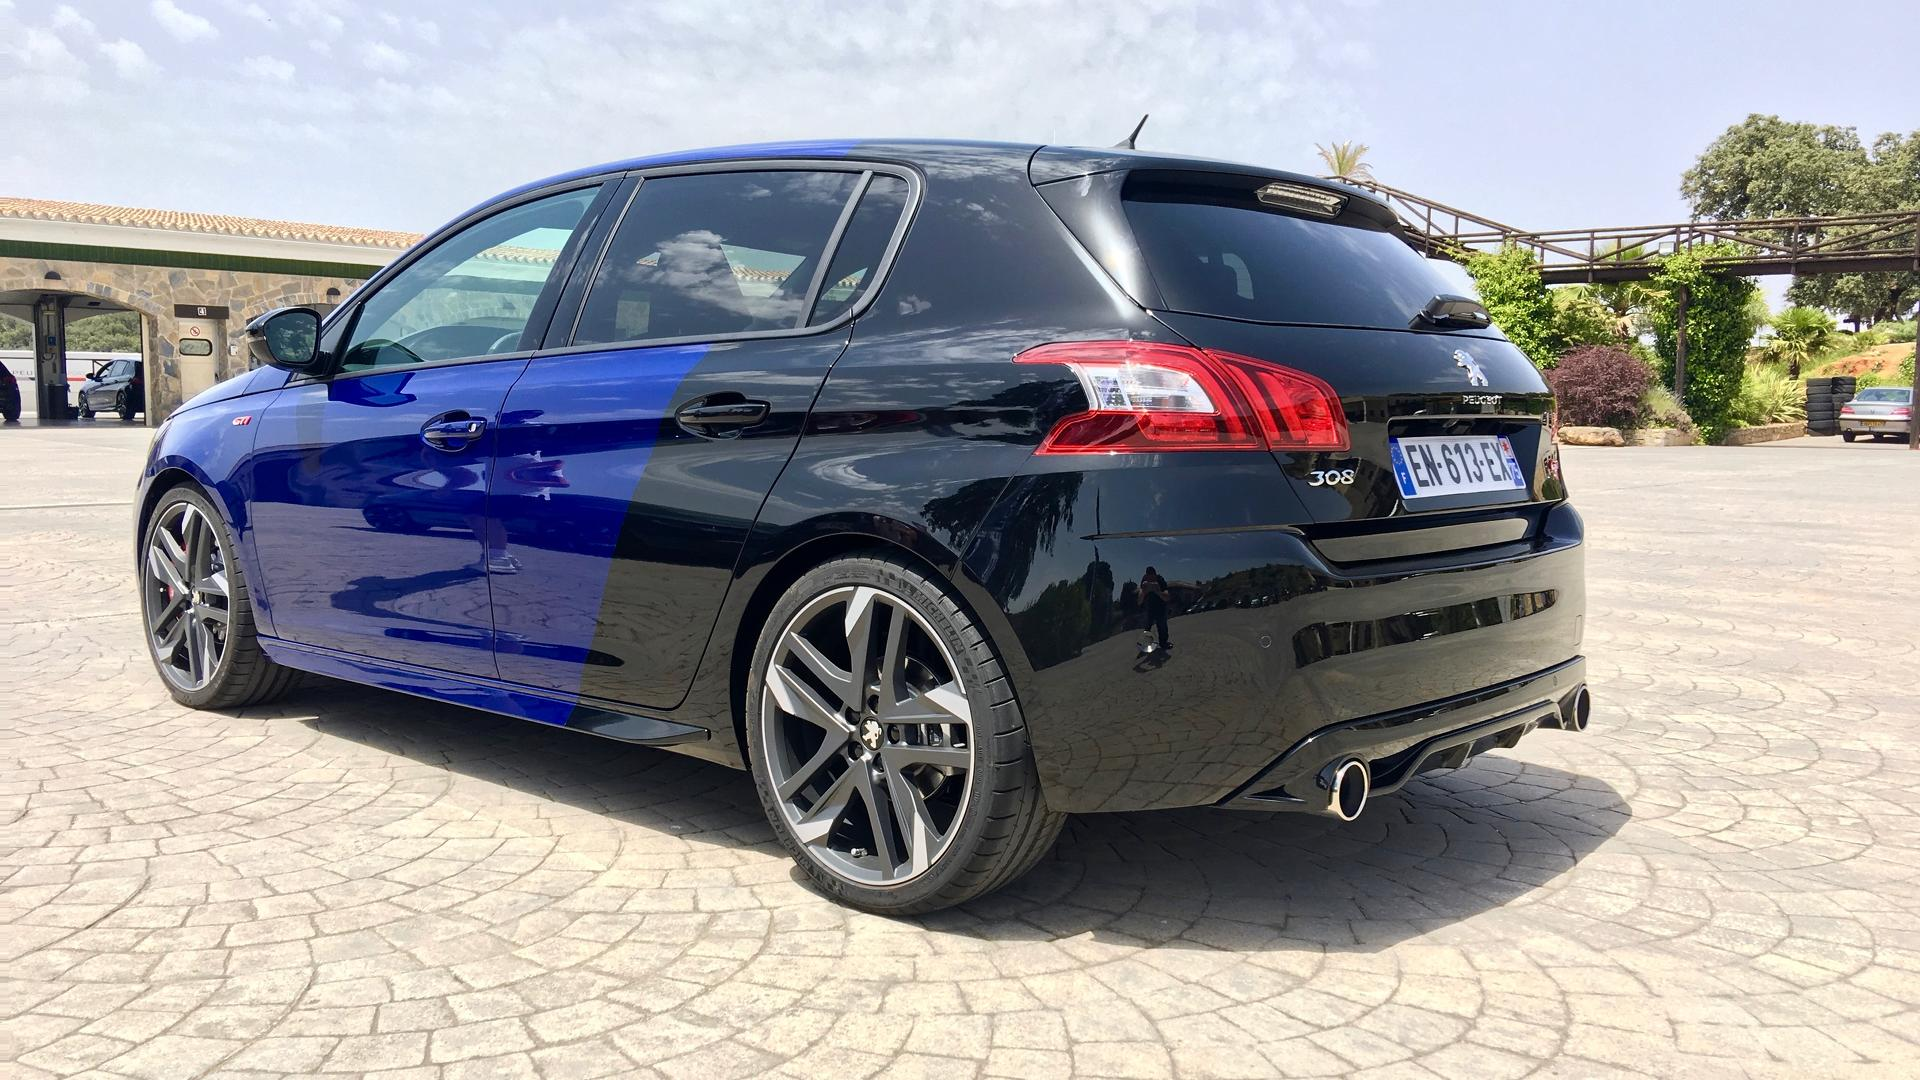 2018 Peugeot 308 Gti First Drive The Sensible Hot Hatch